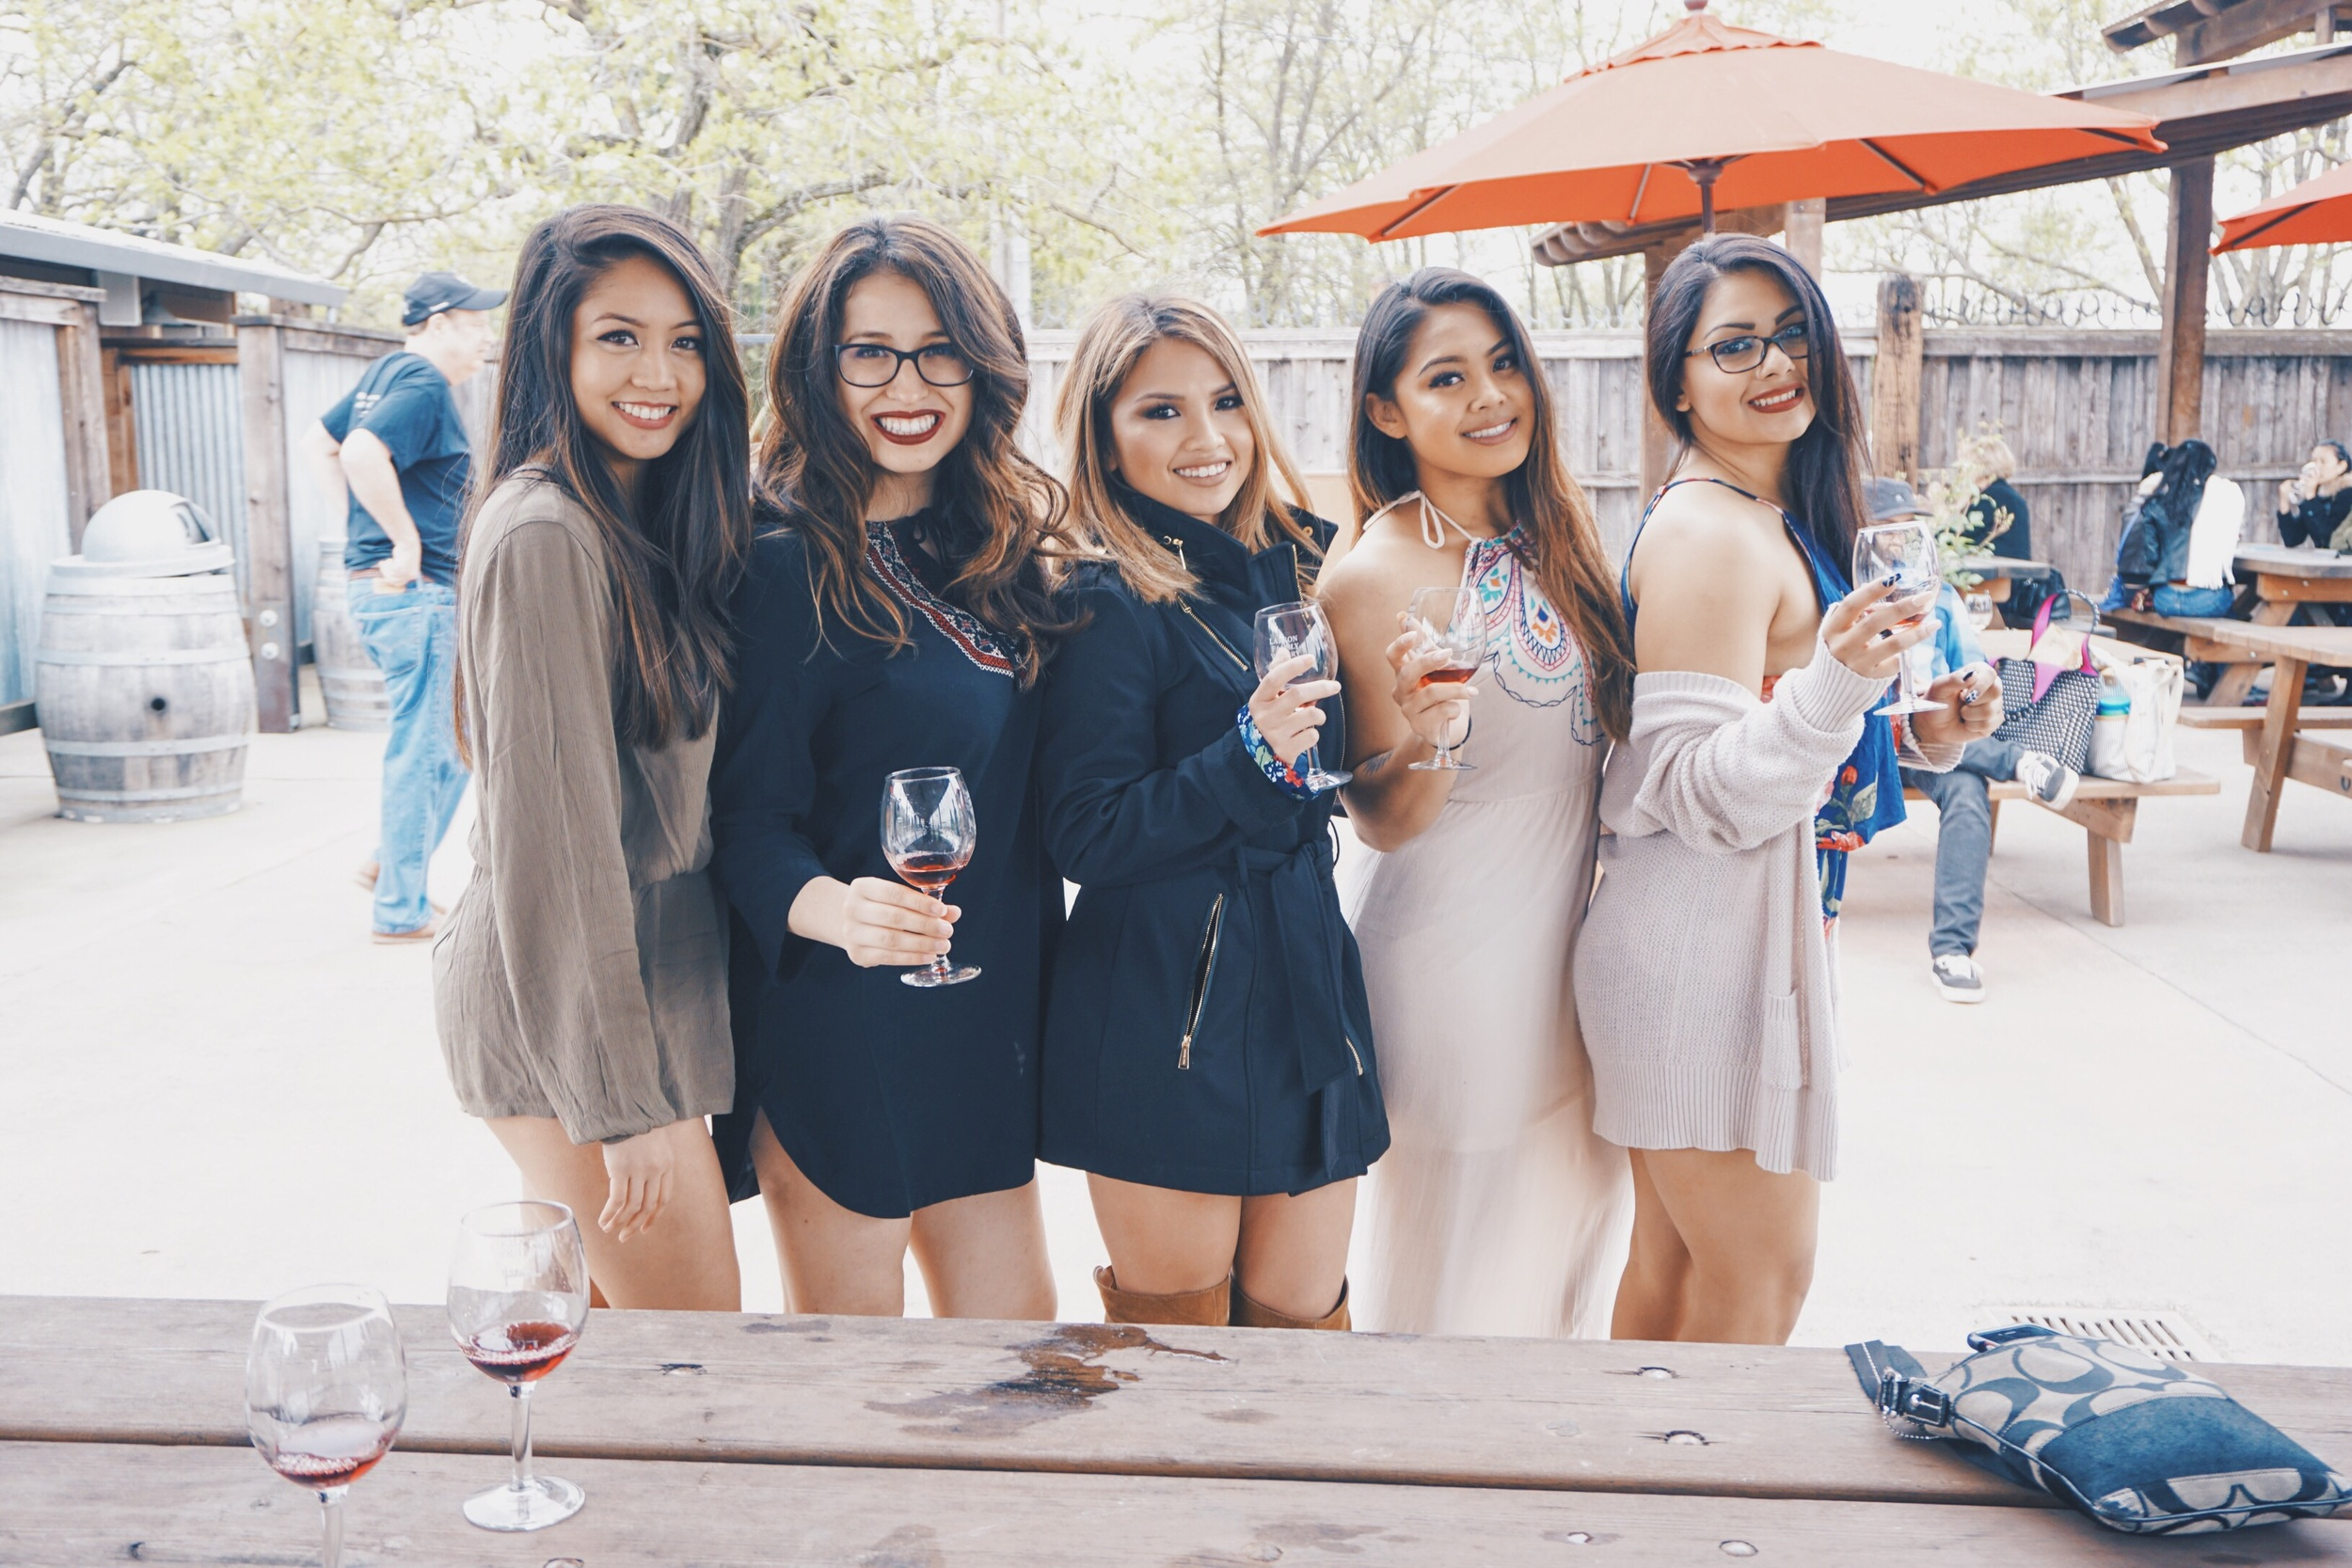 Just a few of the many beautiful ladies there to celebrate Anjuli's big day!